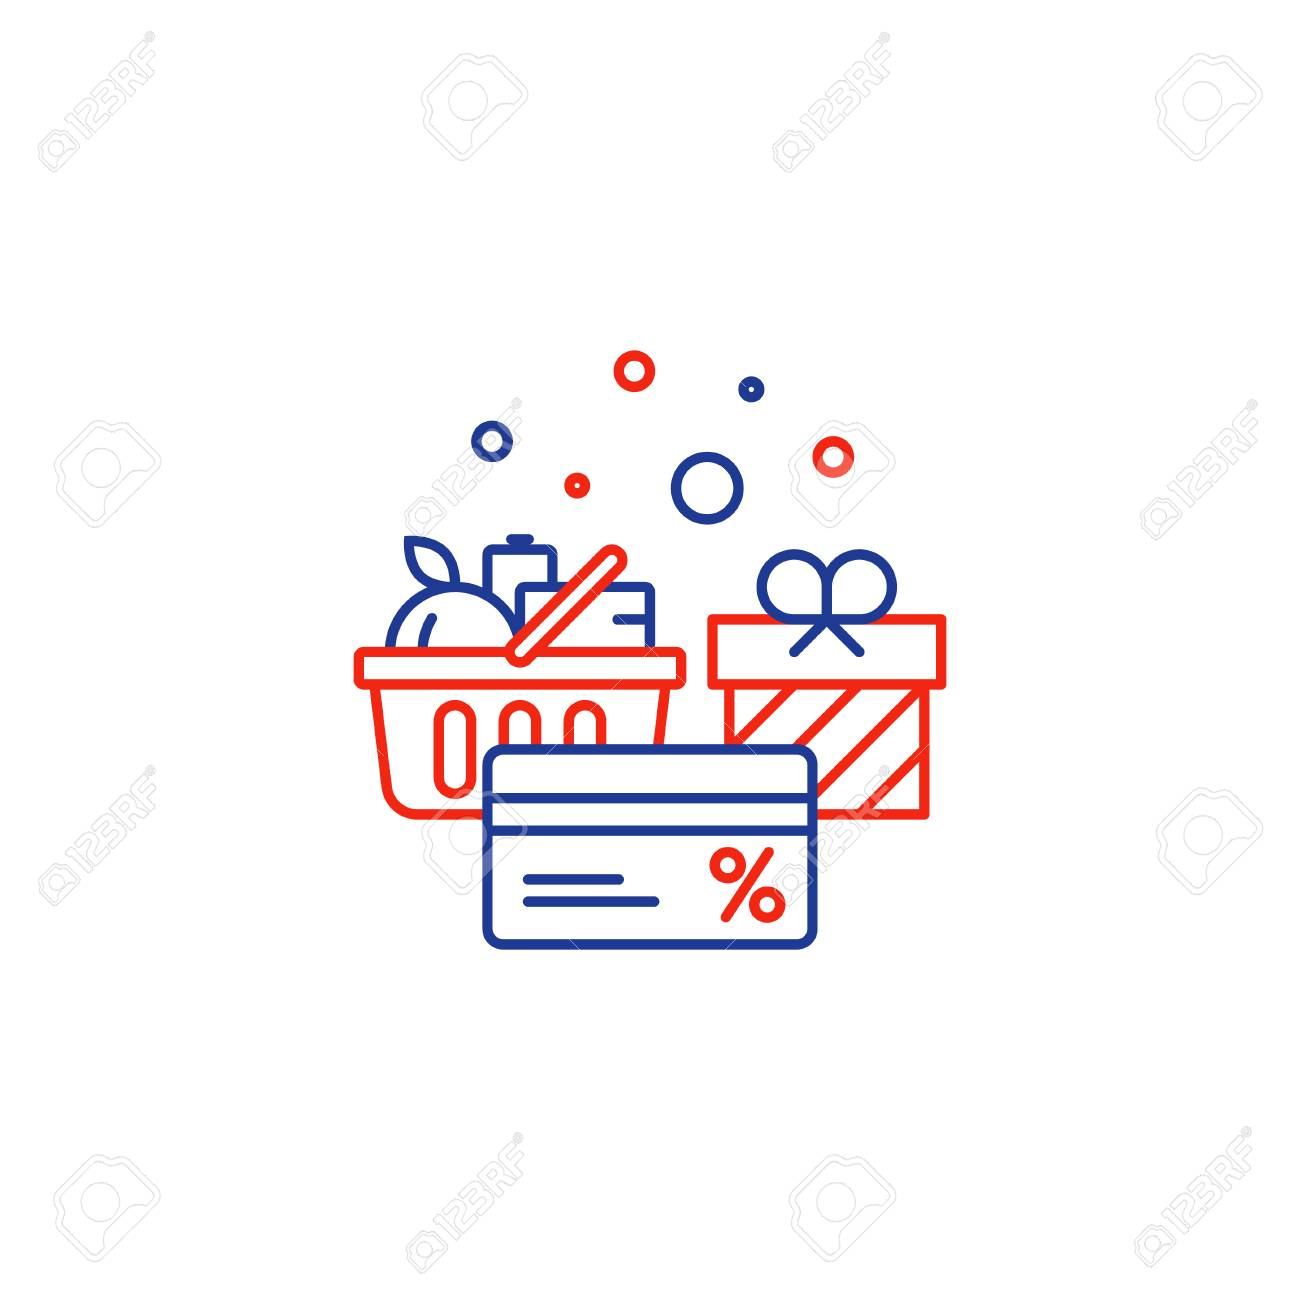 Full basket of food, grocery shopping purchase, special offer, bonus card, discount coupon, loyalty program gift, premium card vector line icon design - 74719603